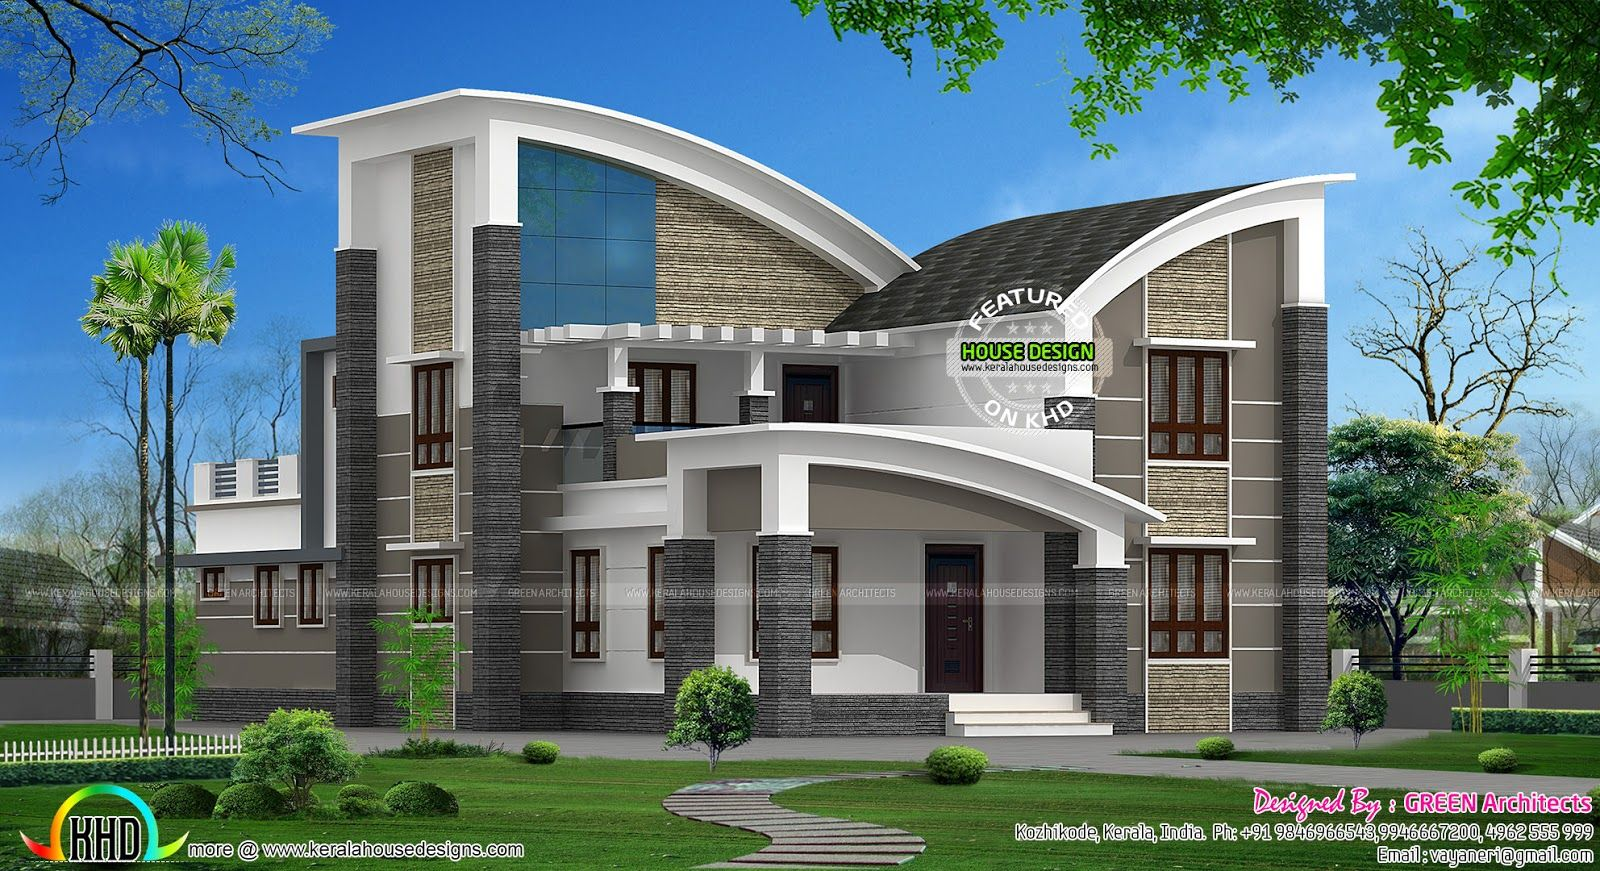 Modern style curved roof villa home inspiration for Home designs kerala architects